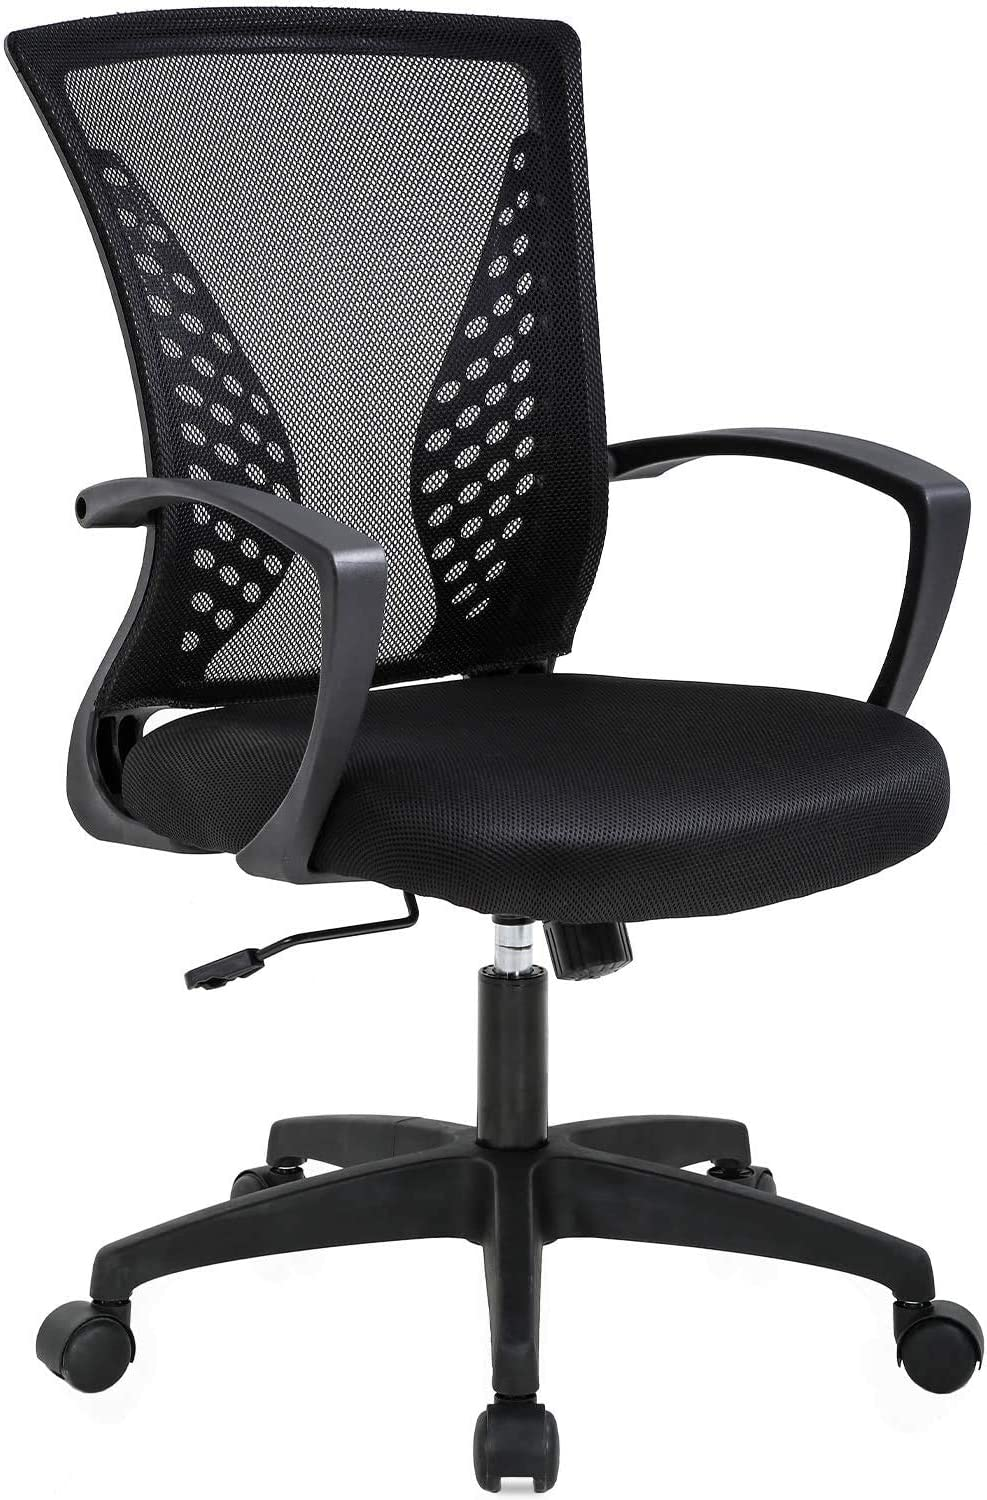 Black Simple Home Ergonomic Desk Office Chair Mesh Computer Chair, Lumbar Support Modern Executive Adjustable Stool Rolling Swivel Chair for Back Pain, Chic Modern Best Home Computer Office Chair